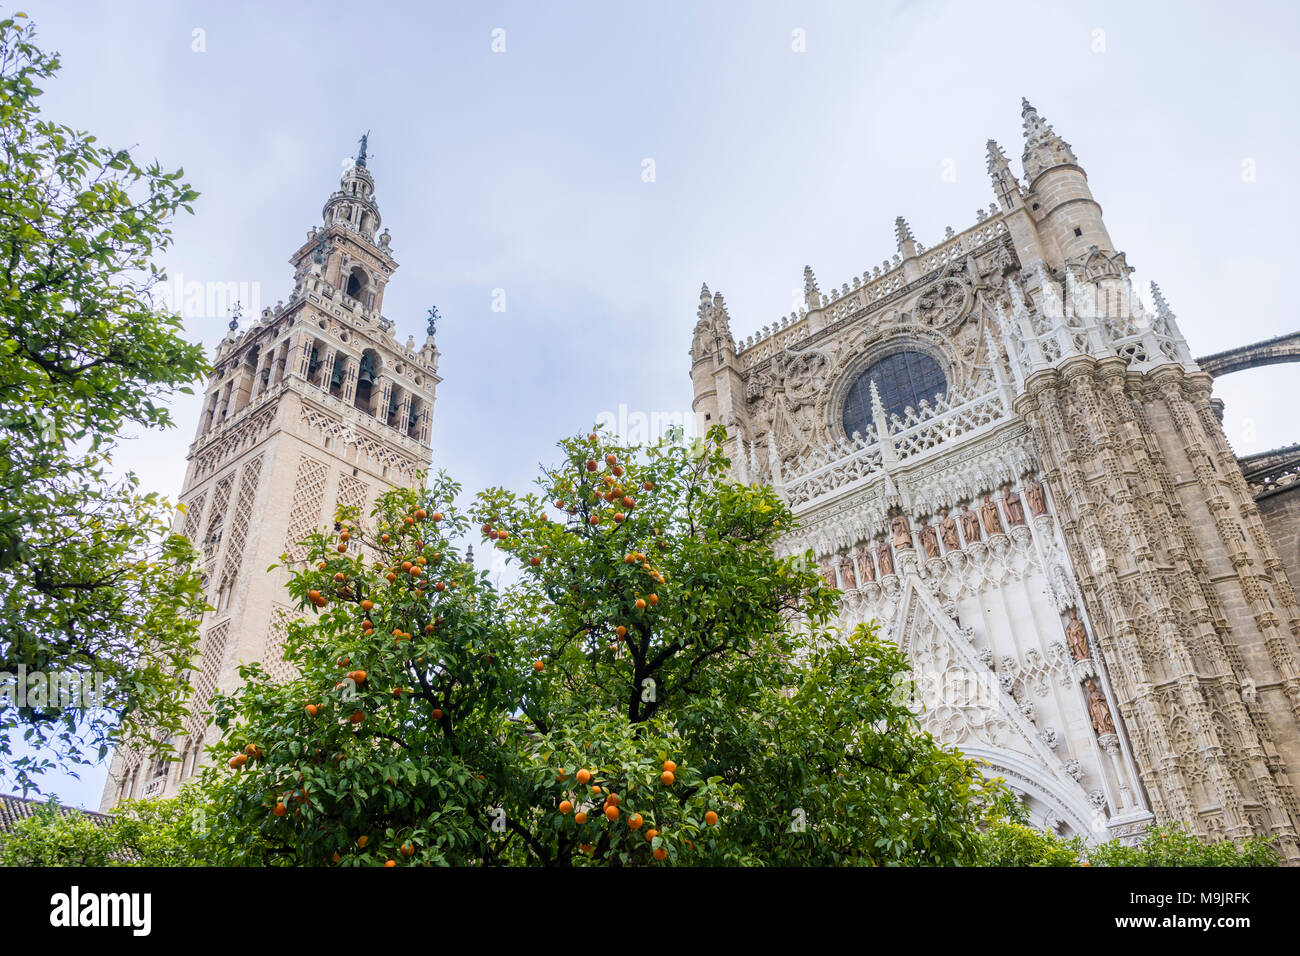 Orange trees in the courtyard of the Seville Cathedral (Catedral de Santa María de la Sede) with the impressive Giralda Bell Tower to the left - Stock Image